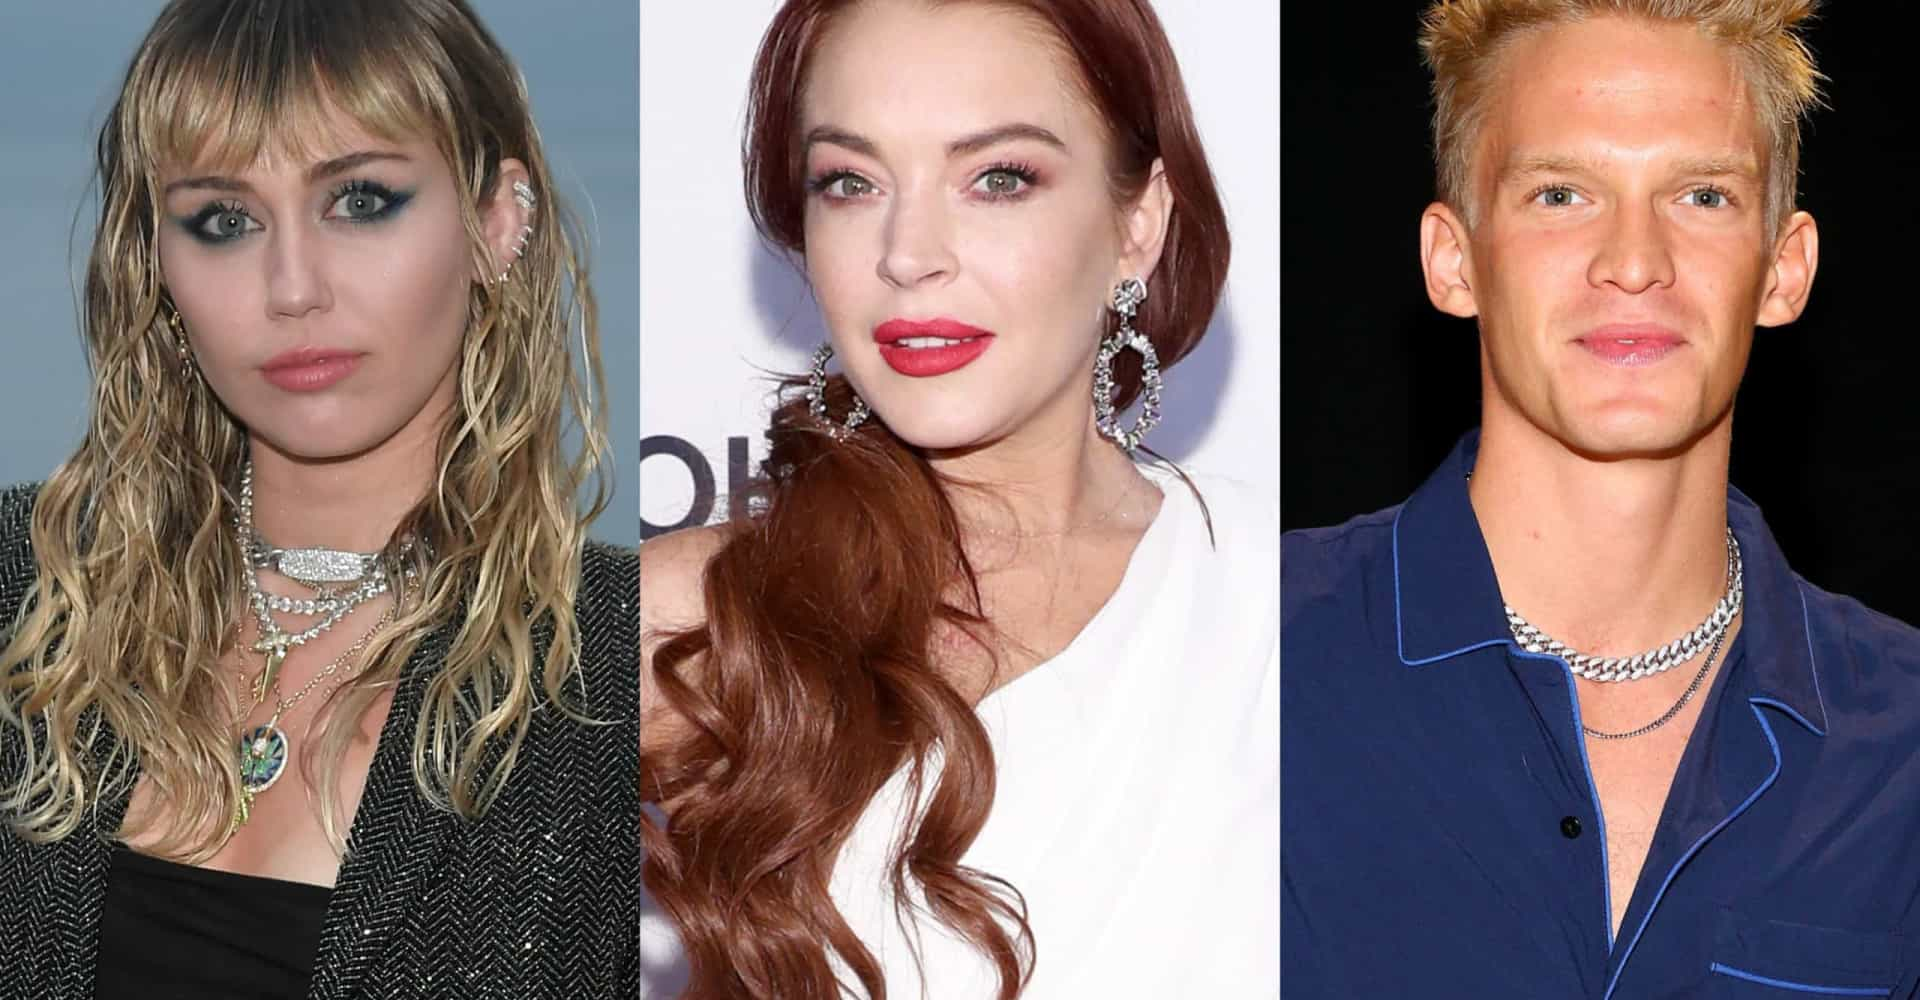 Mean girls: Lindsay Lohan and other stars who've lashed out